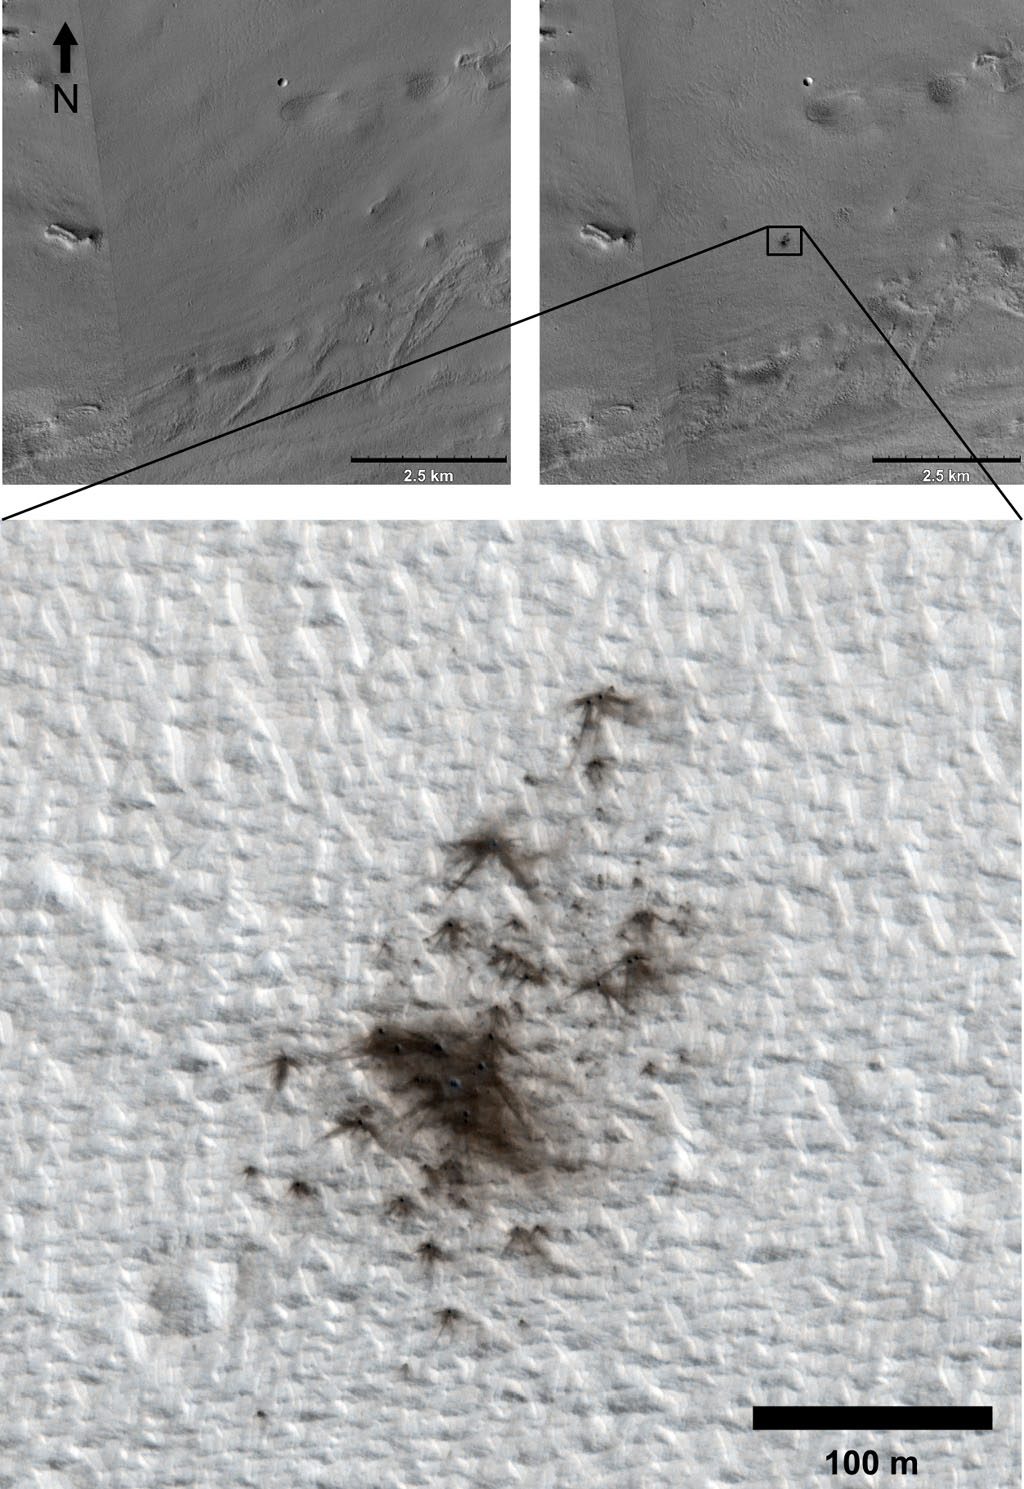 This set of images from cameras on NASA's Mars Reconnaissance Orbiter documents the appearance of a new cluster of impact craters on Mars. The orbiter has imaged at least 248 fresh craters, or crater clusters, on Mars.